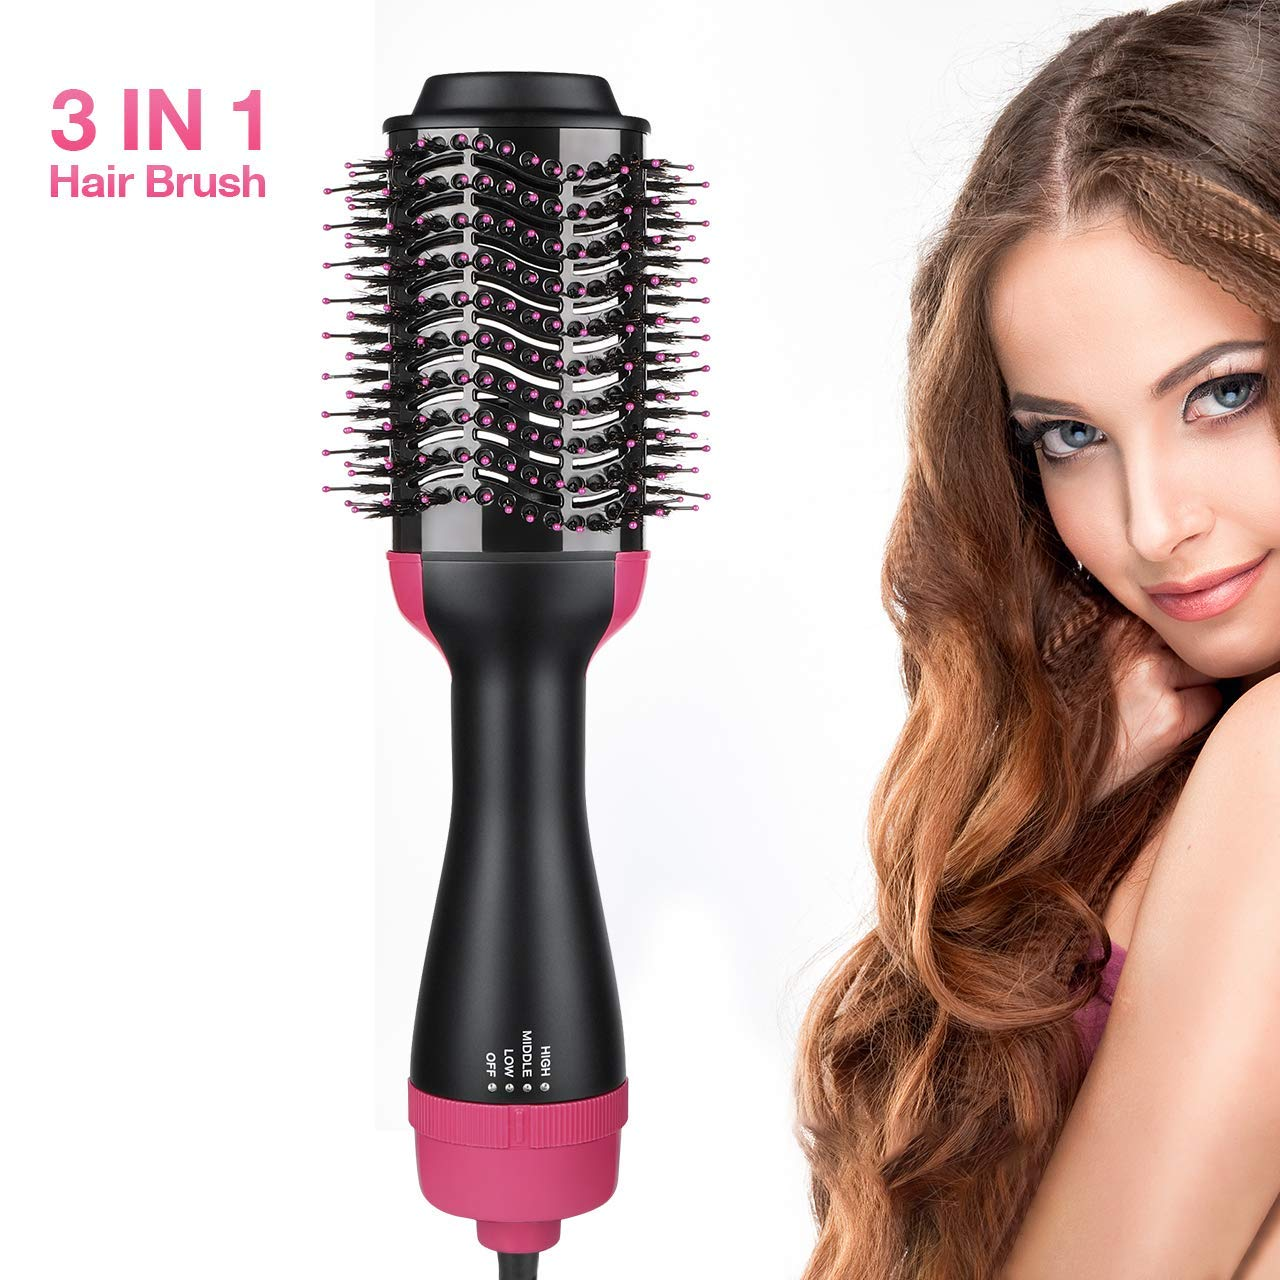 JIACHAN One Step Hair Dryer and Volumizer, Hair Dryer Brush for Women Men and Straightener Curling Iron Brush Fast Hair Styling for All Hair Type with 2 Speed Plus Cool Setting